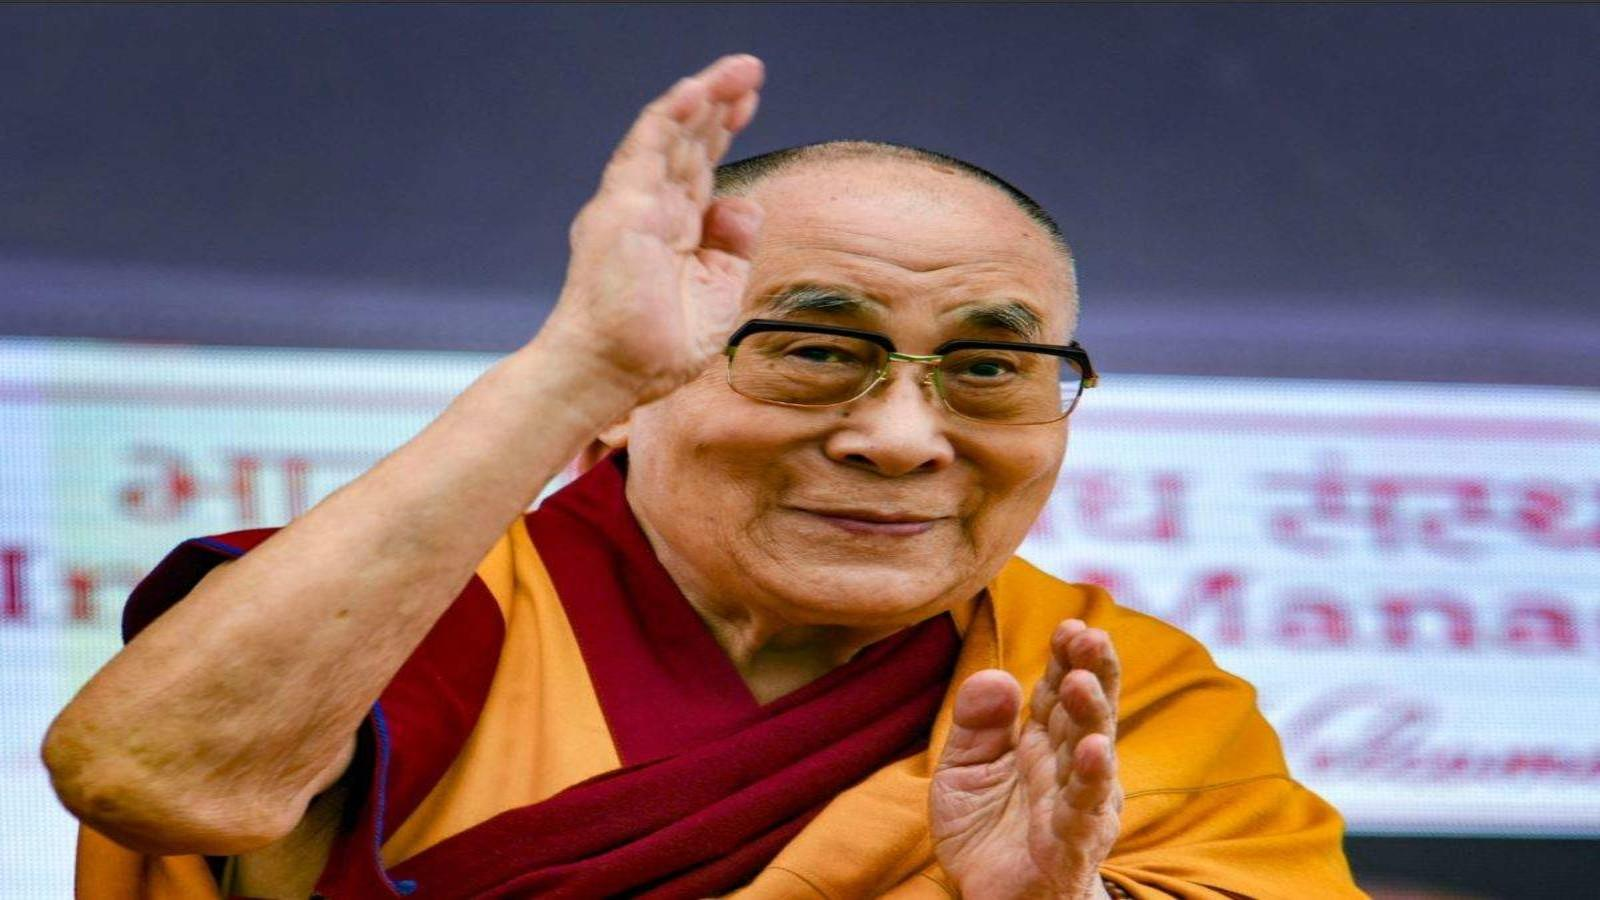 buddhist-spiritual-leader-the-dalai-lama-celebrates-85th-birthday-with-video-message